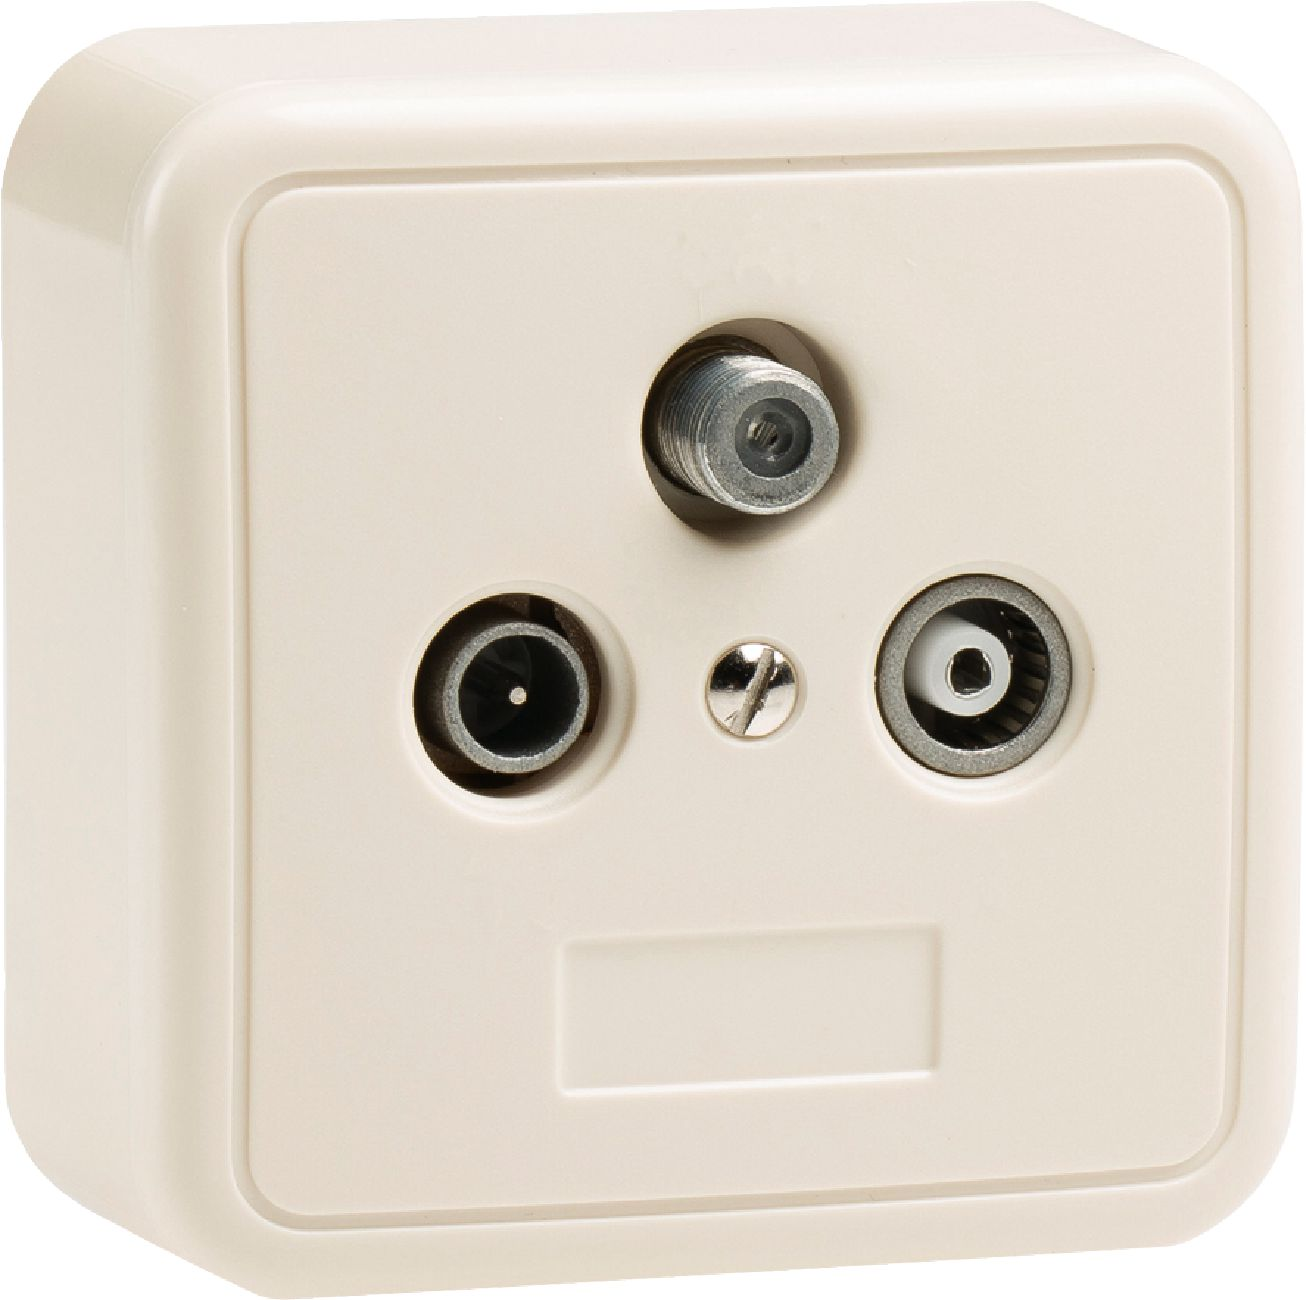 Kn Wallbox3 K 246 Nig Antenna Wall Box End White